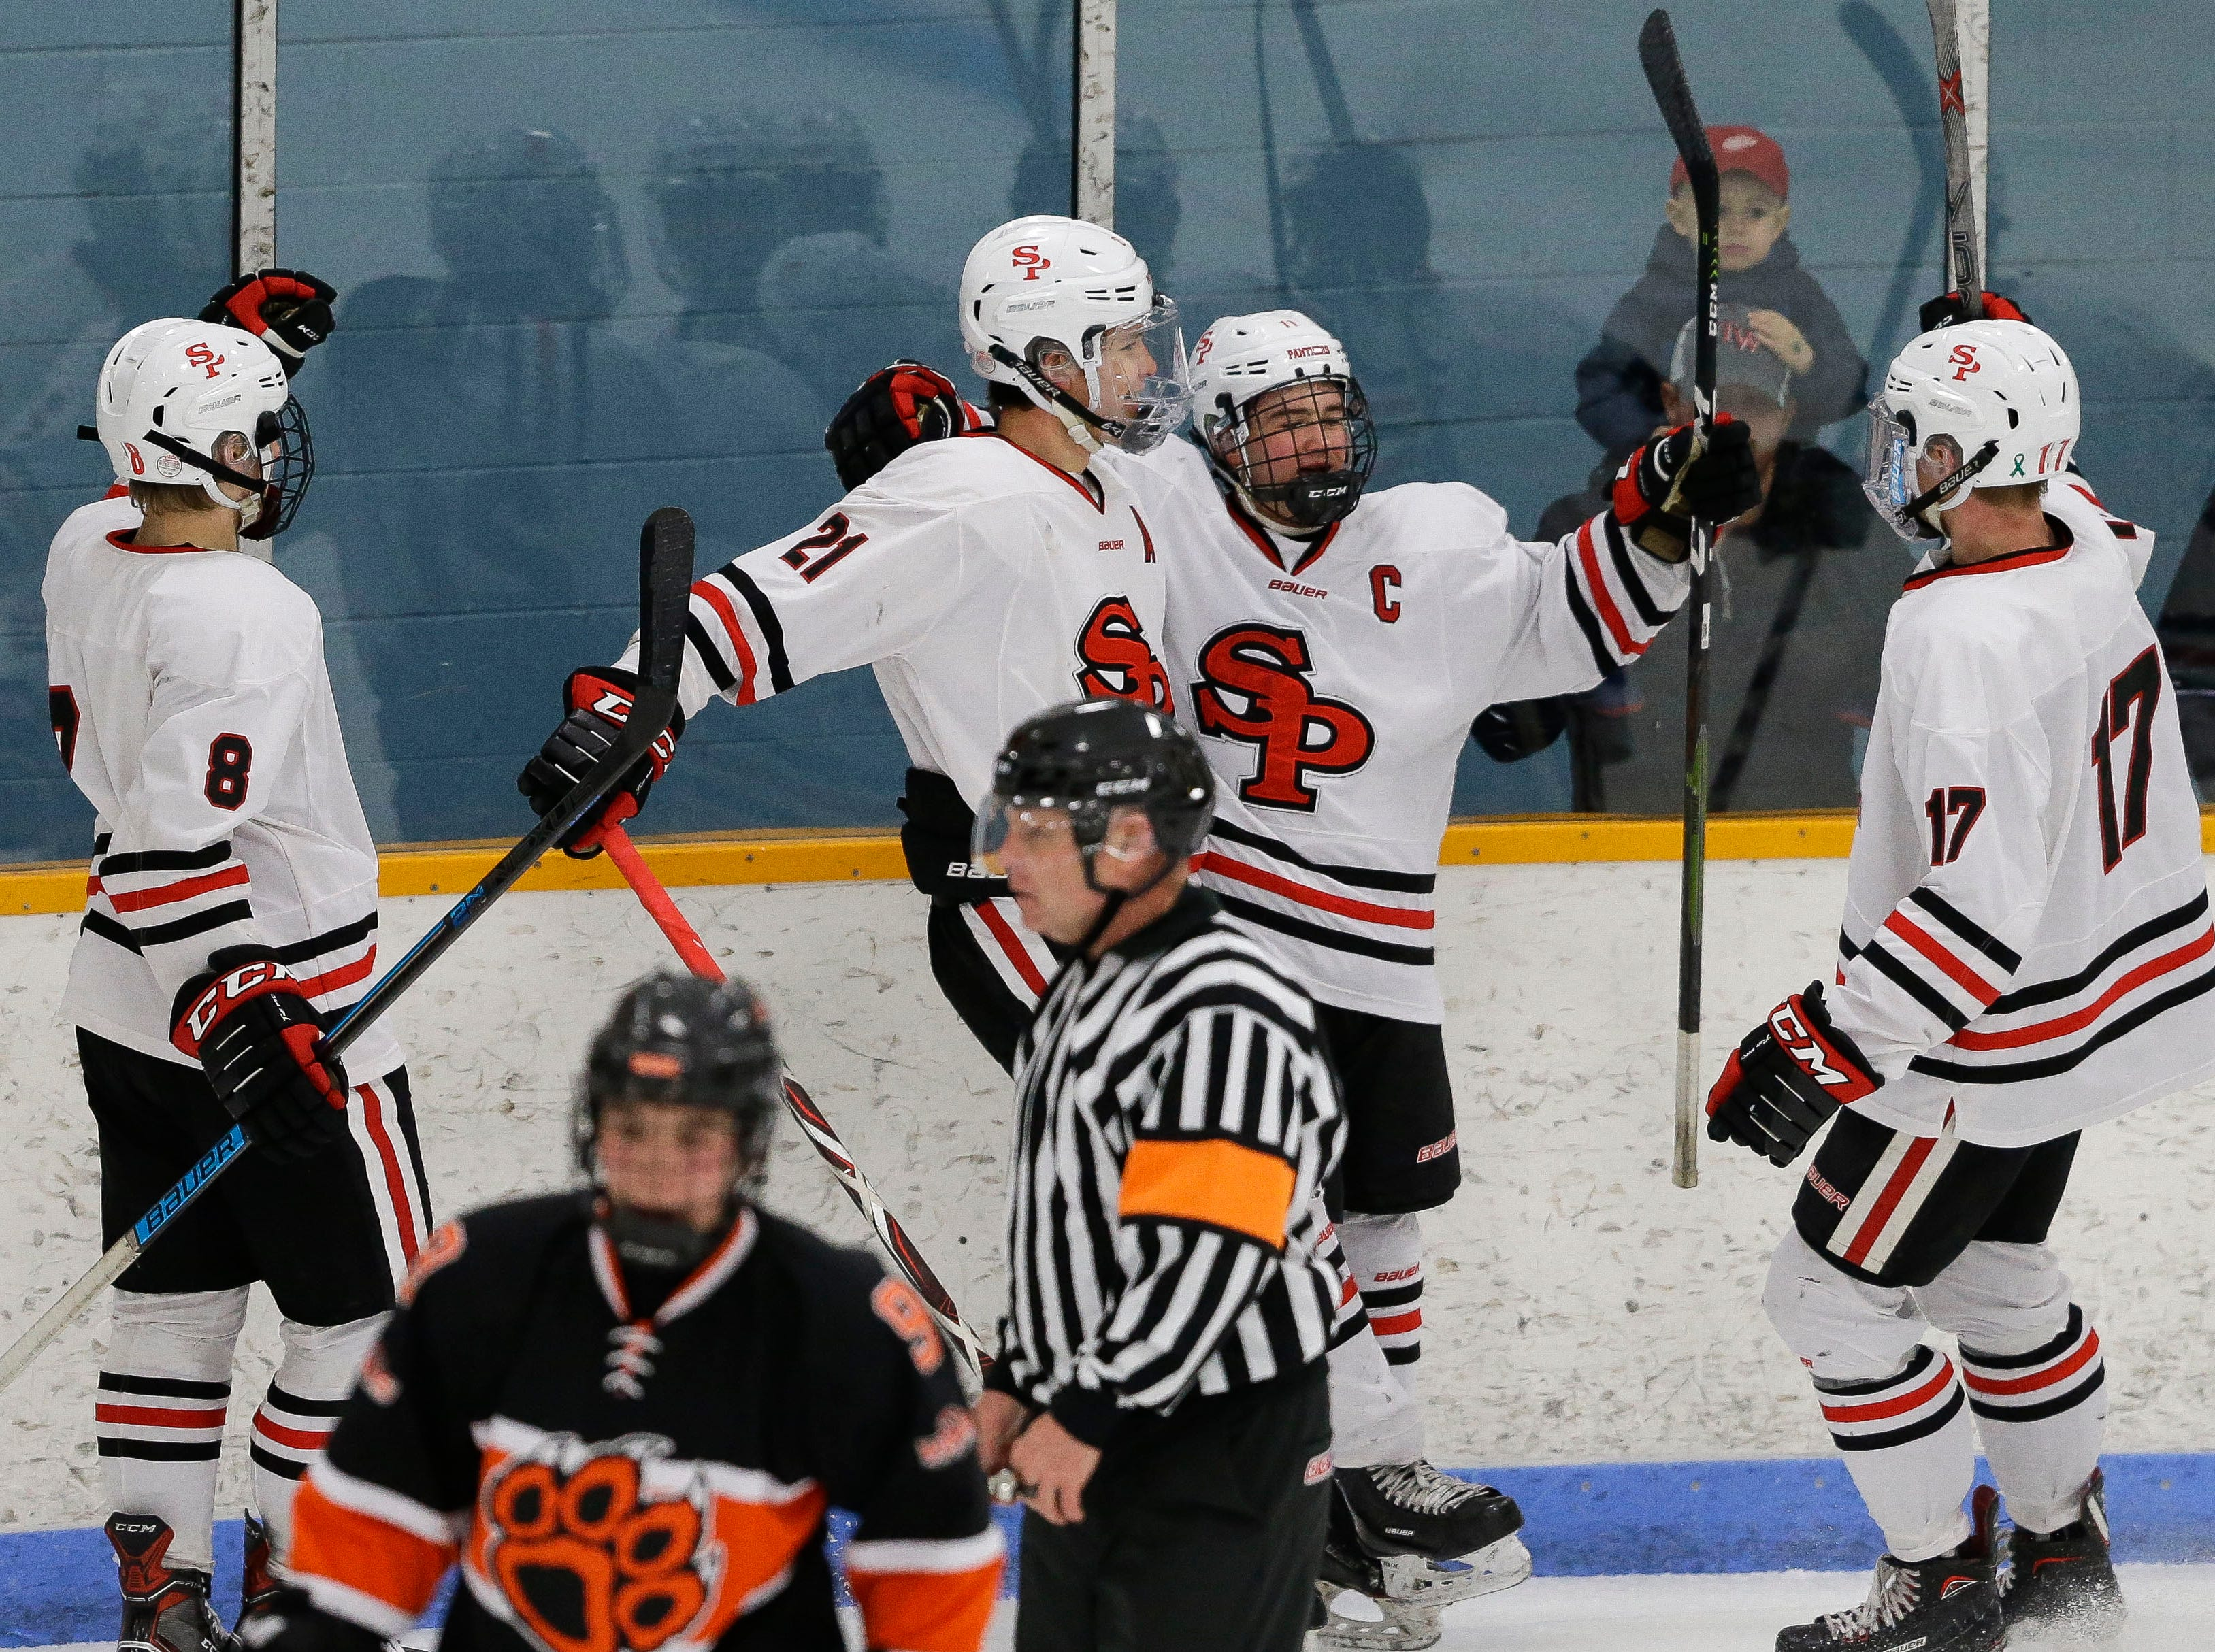 SPASH's Barrett Brooks (11) celebrates with his teammates after scoring a goal against Verona on Saturday, January 26, 2019, at K.B. Willett Ice Arena in Stevens Point, Wis. Brooks had a pair of first period goals to give the Panthers a 2-1 lead at the first intermission.Tork Mason/USA TODAY NETWORK-Wisconsin